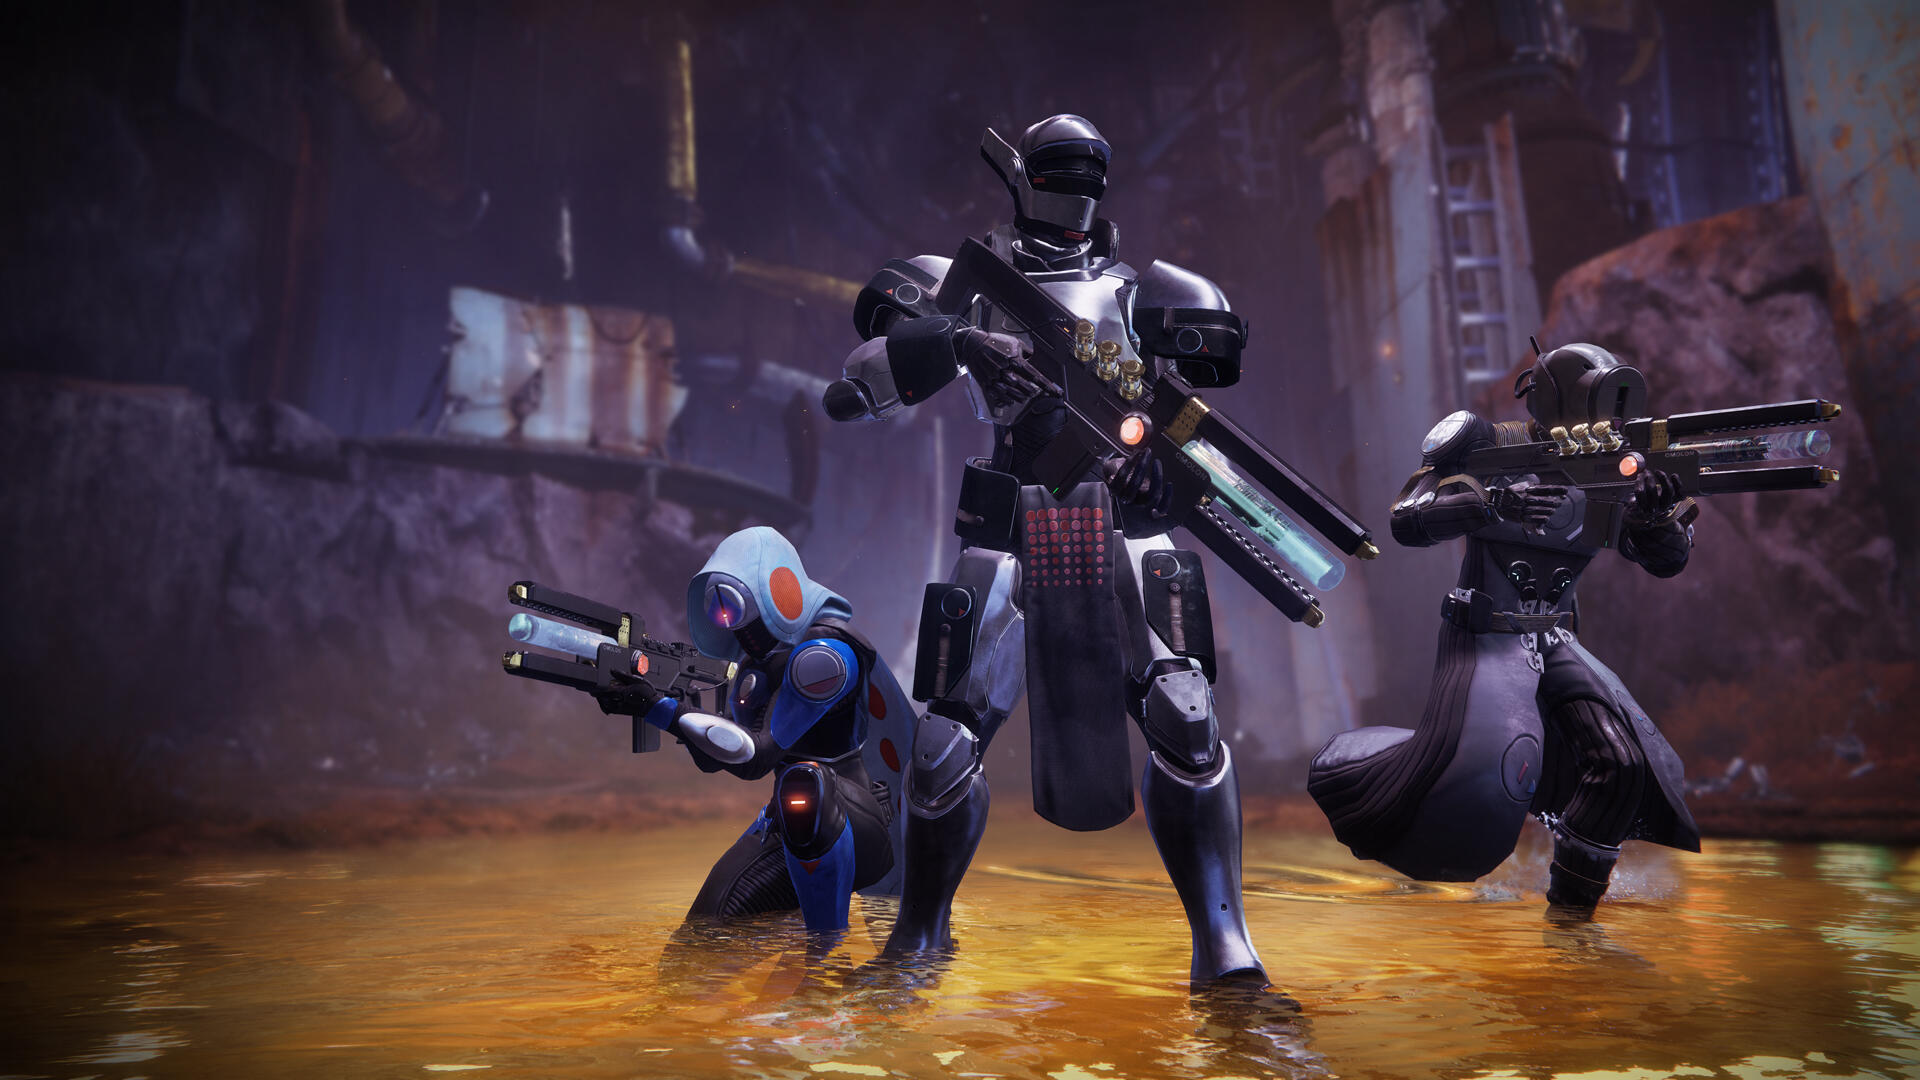 Sony Reportedly Blocked Cross-Platform Character Transfers for Destiny 2